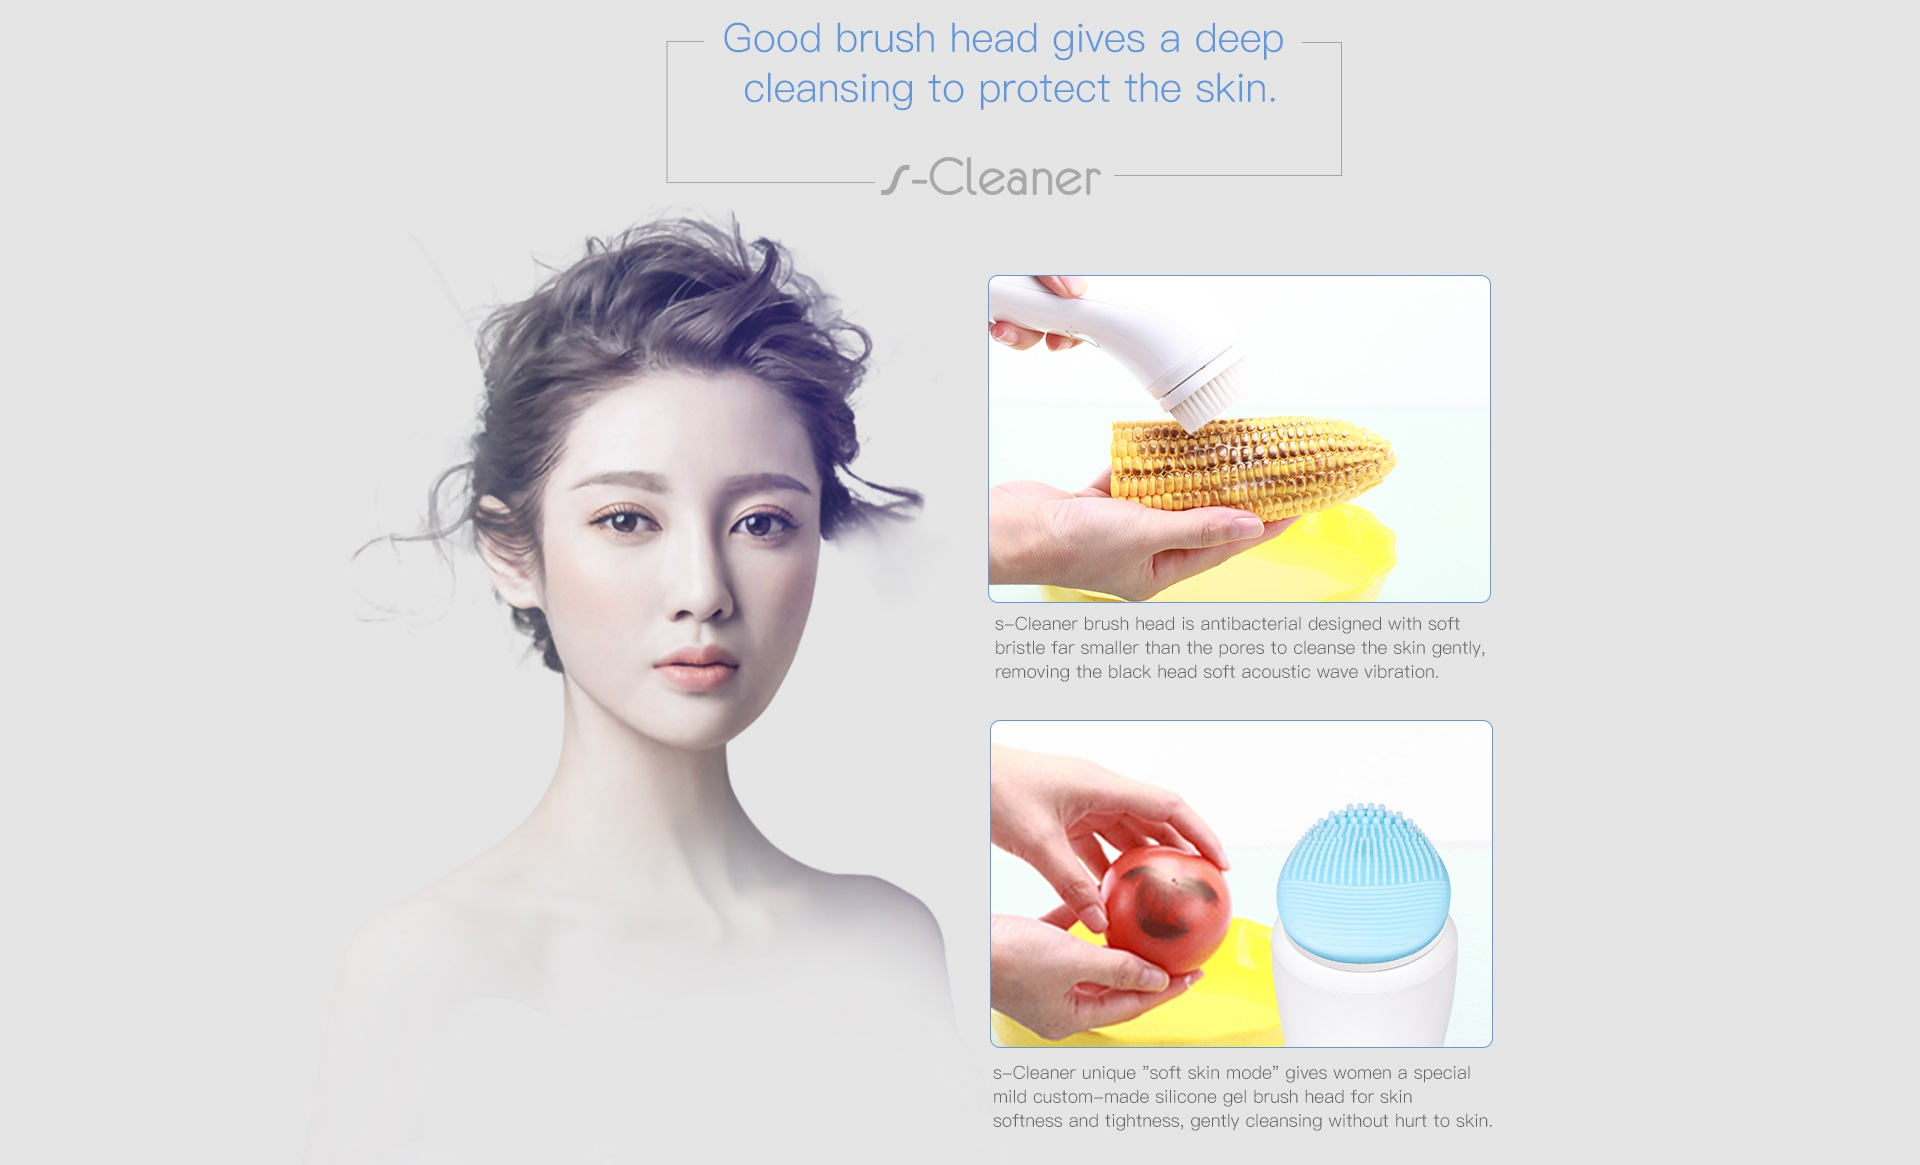 nanoTime Beauty s-Cleaner sonic skin cleansing